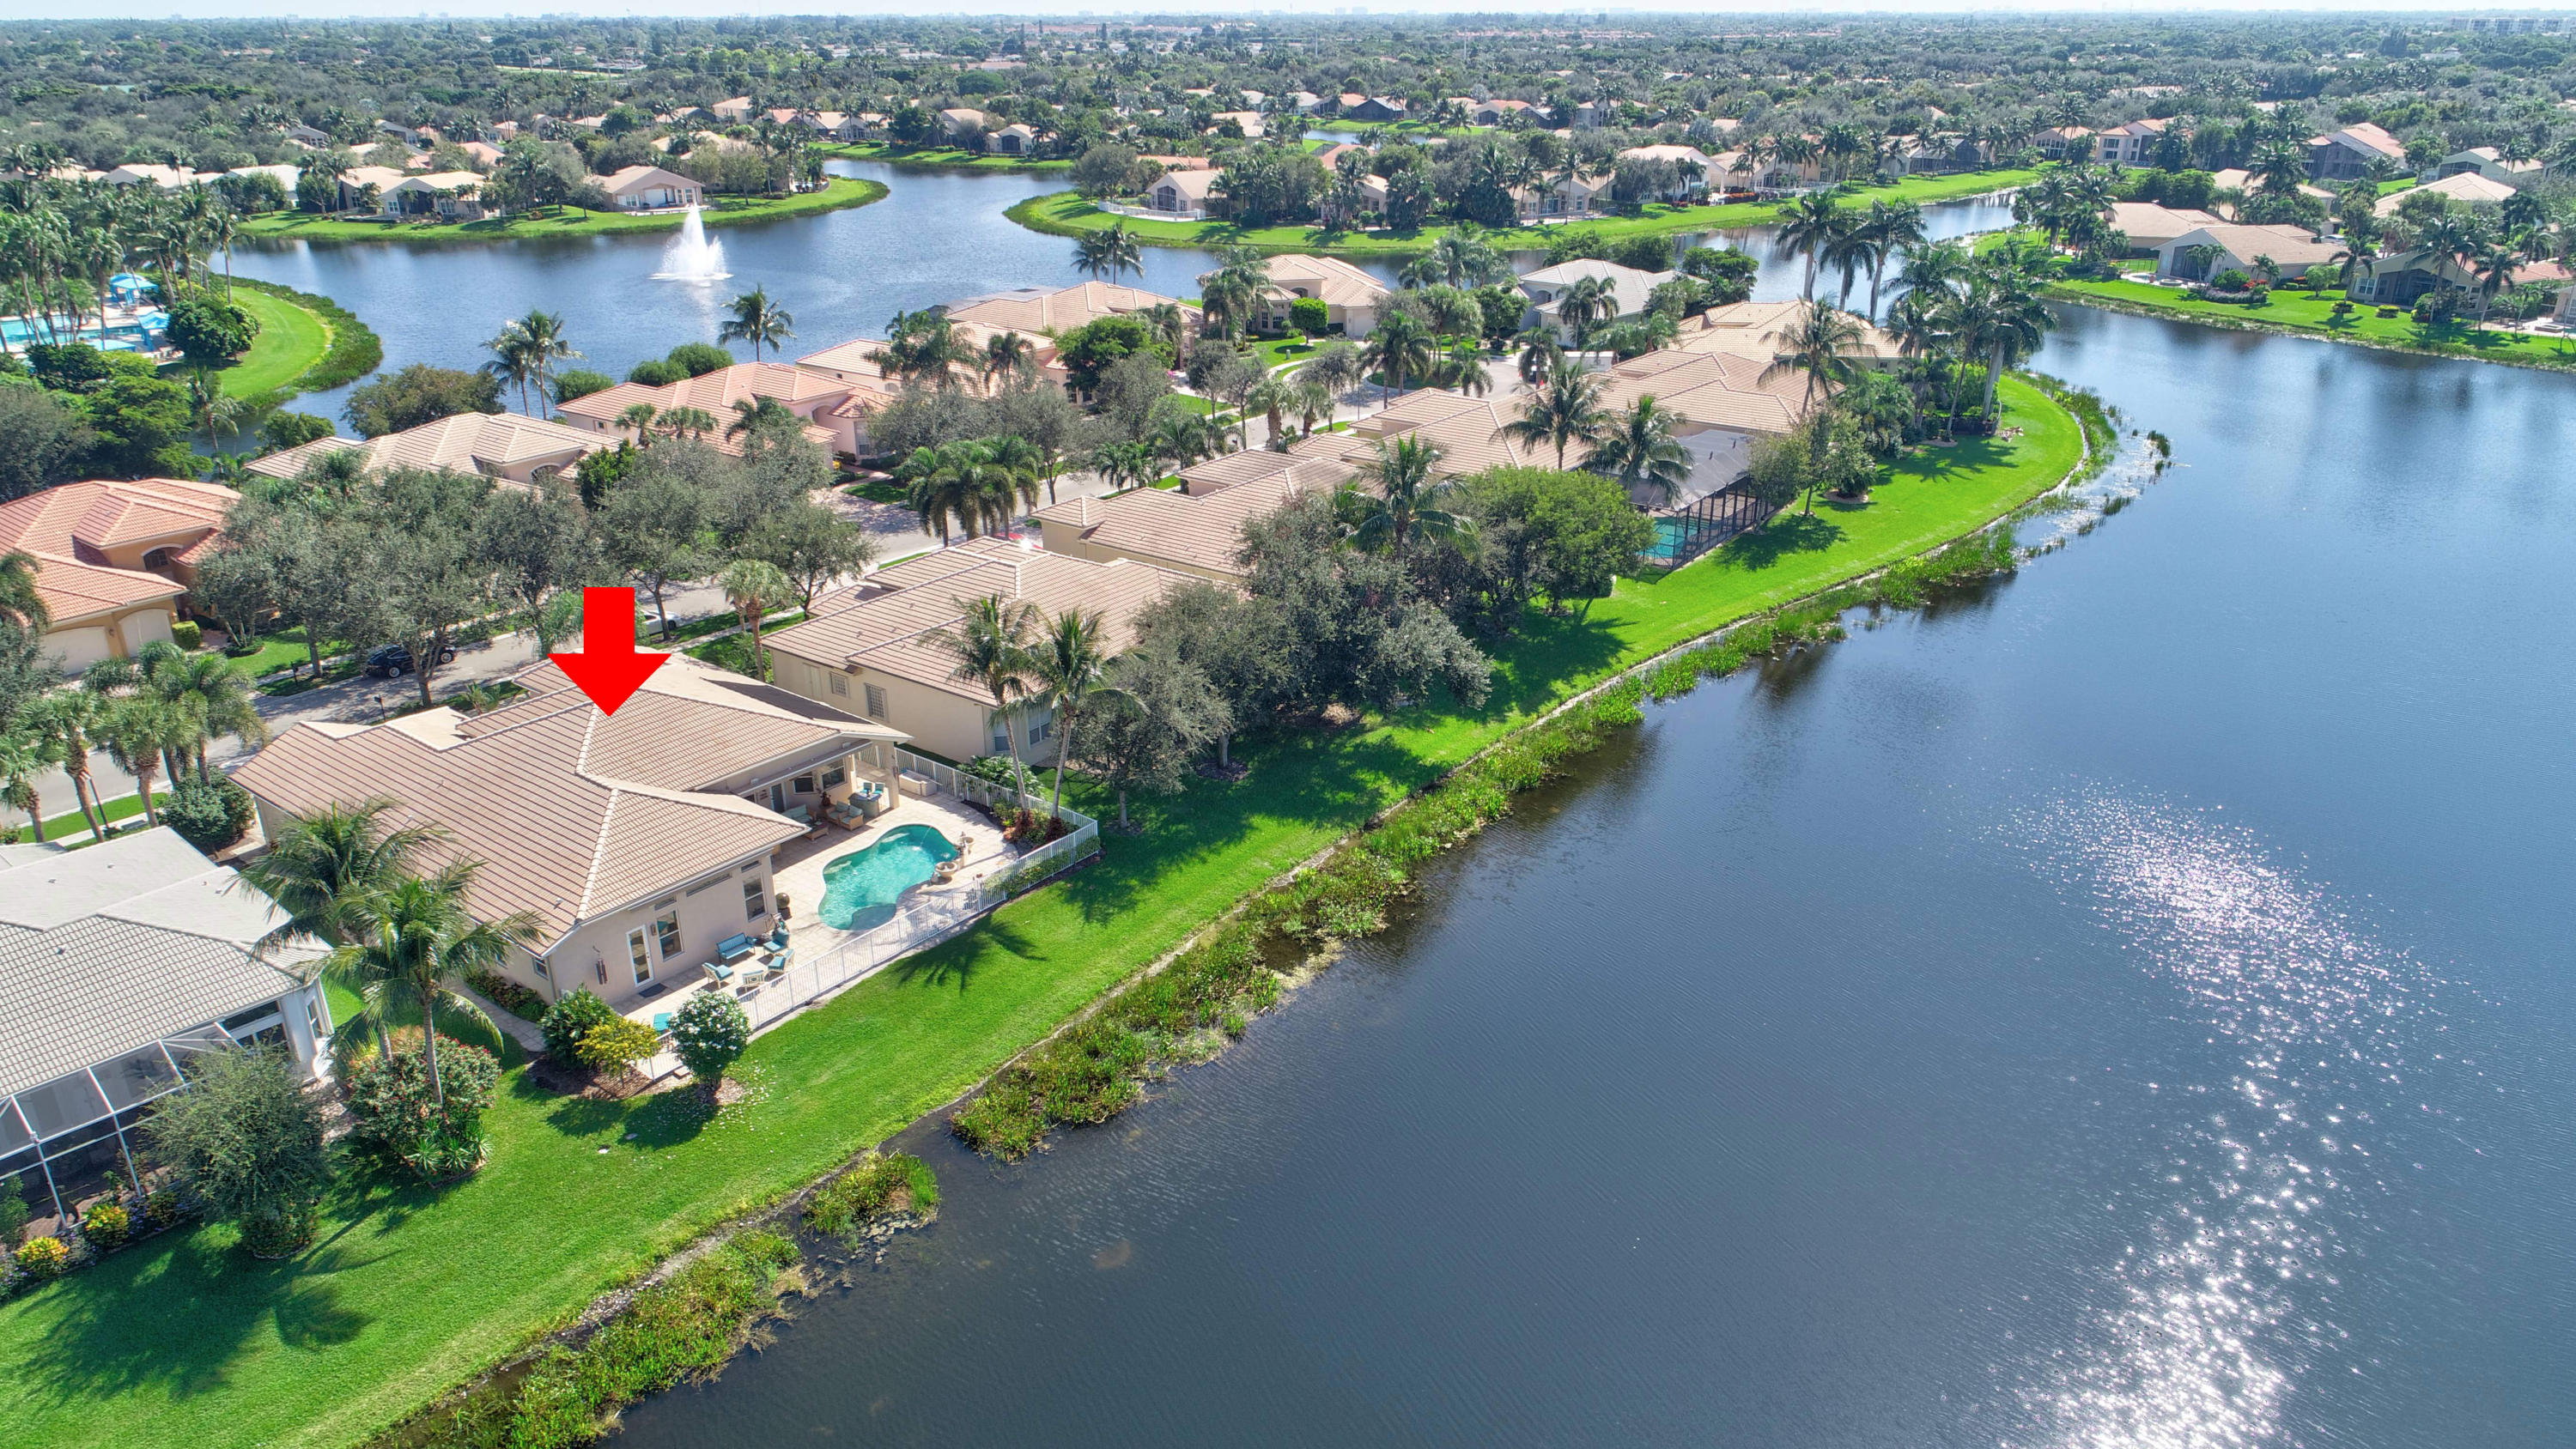 Home for sale in G.l. Homes Delray Beach Florida